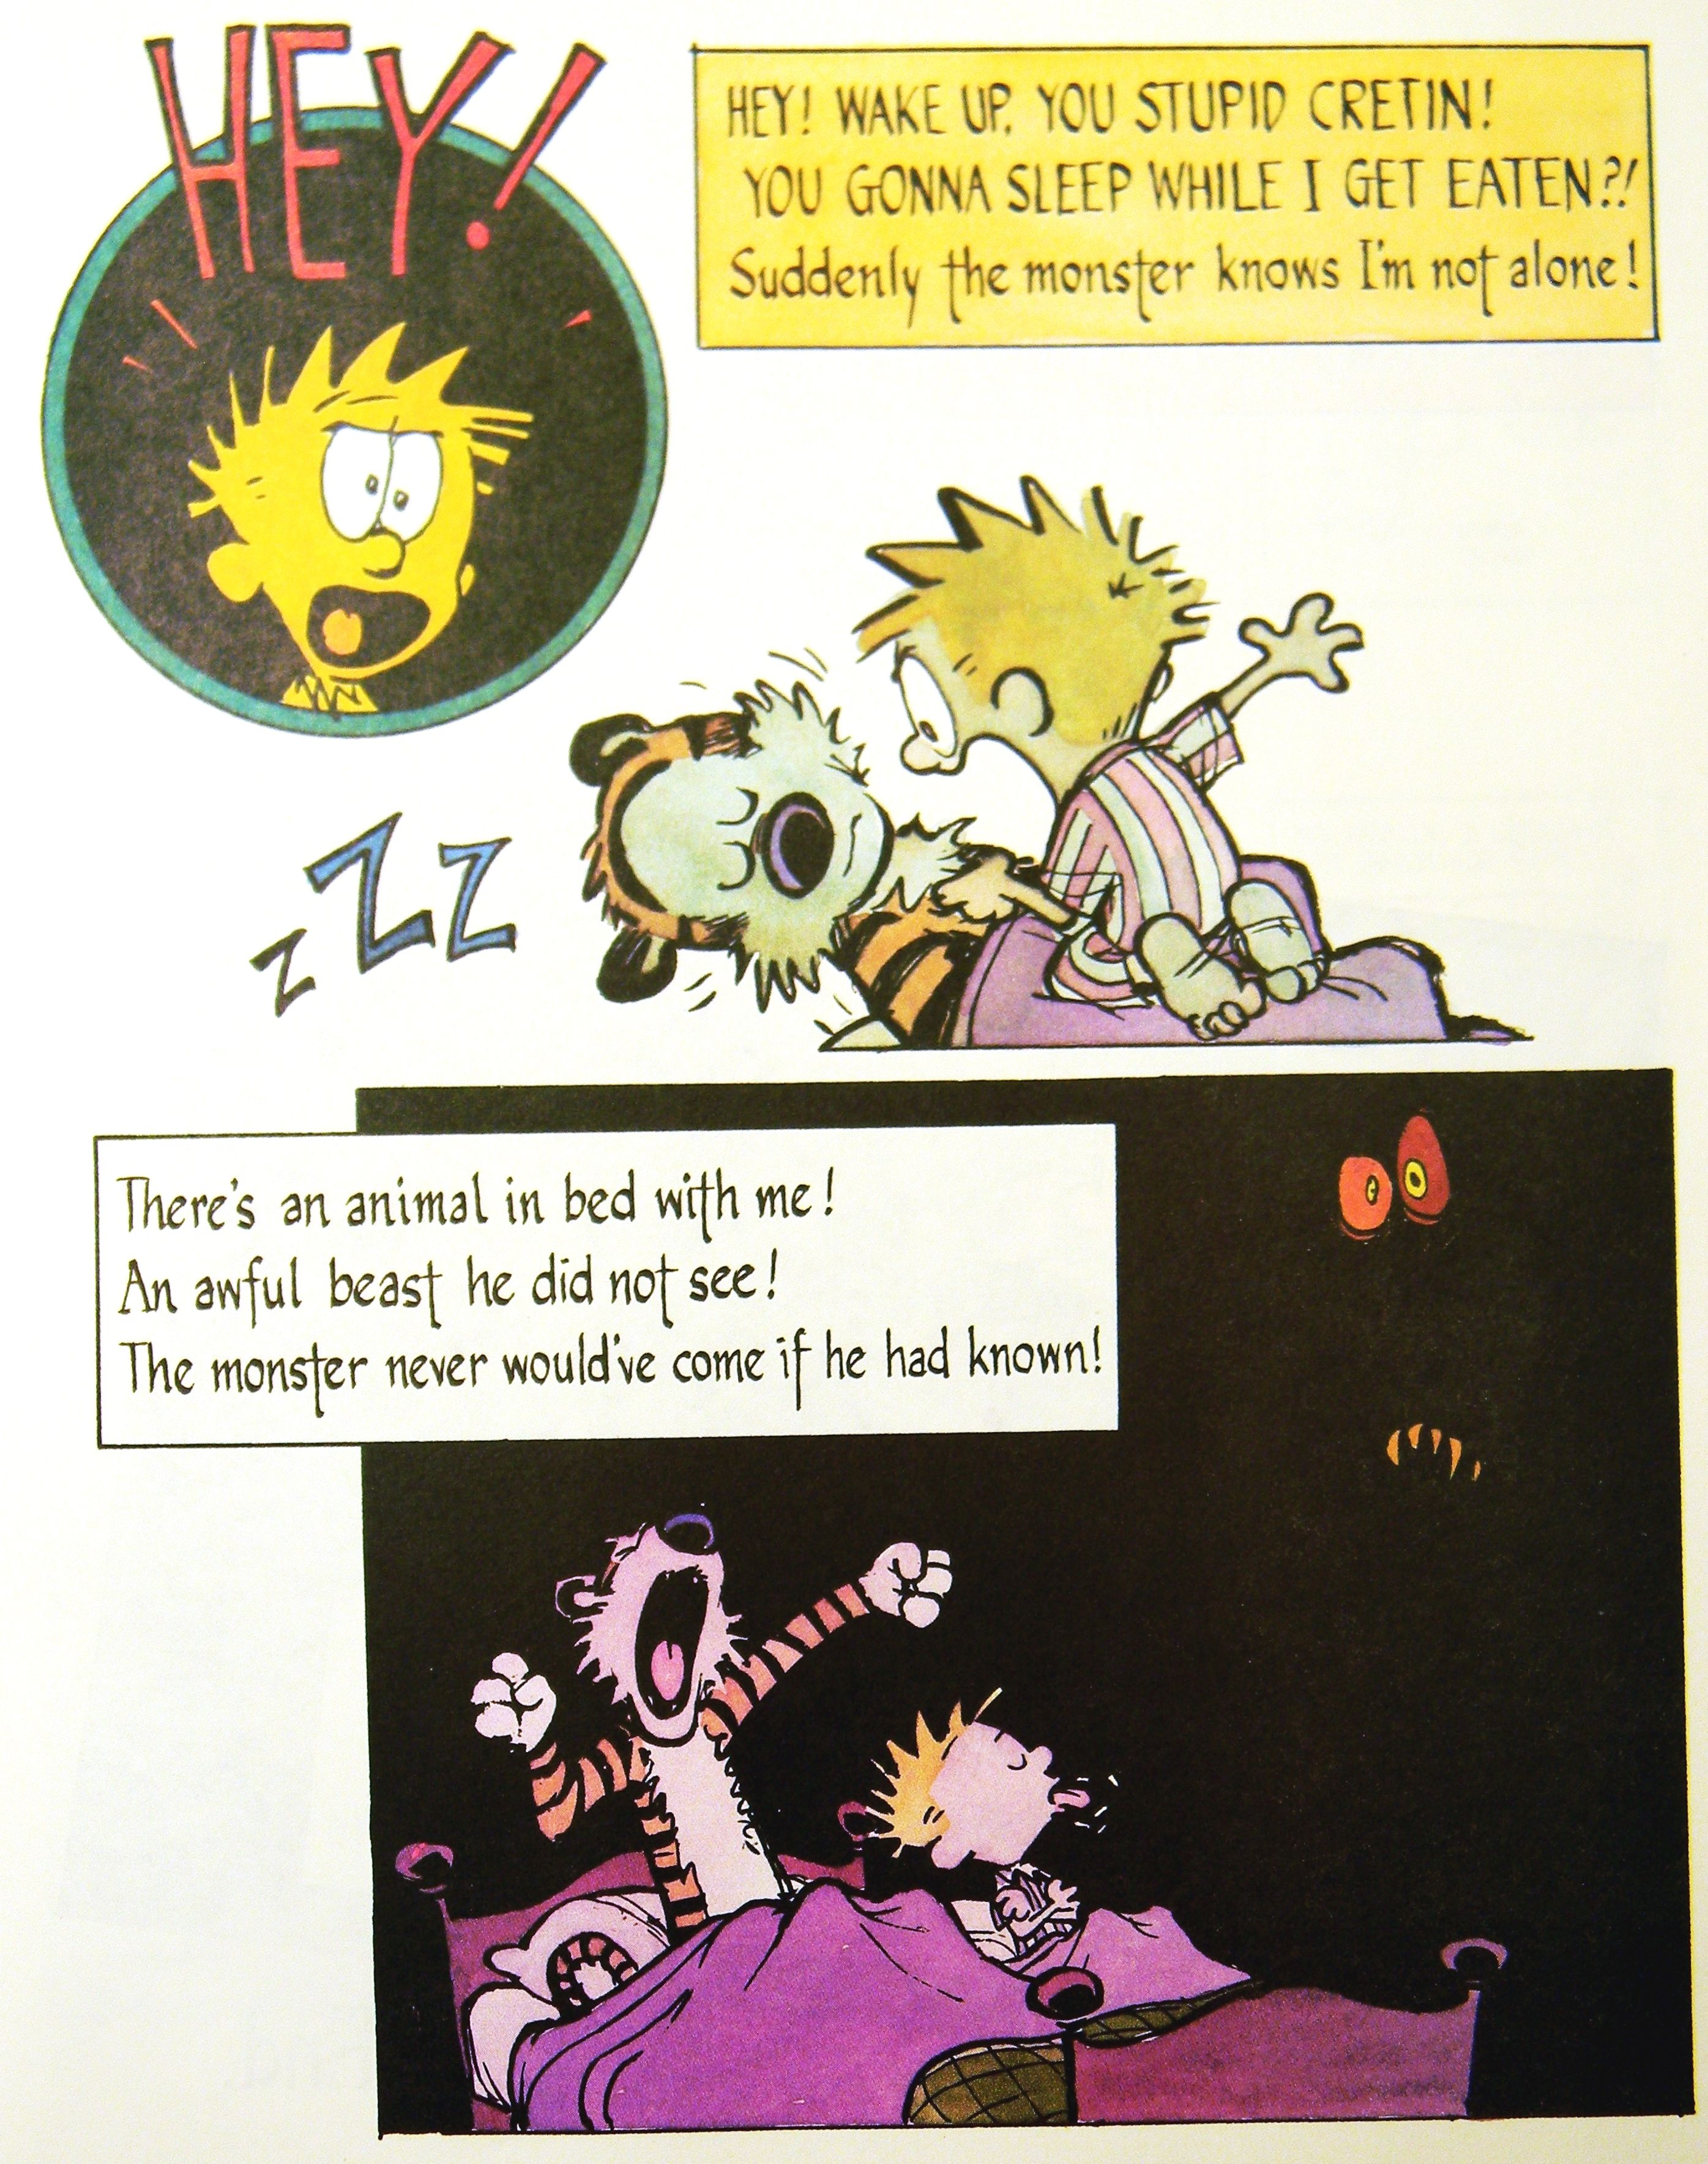 Calvin and Hobbes A Nauseous Nocturne 11 Hey Wake up you stupid